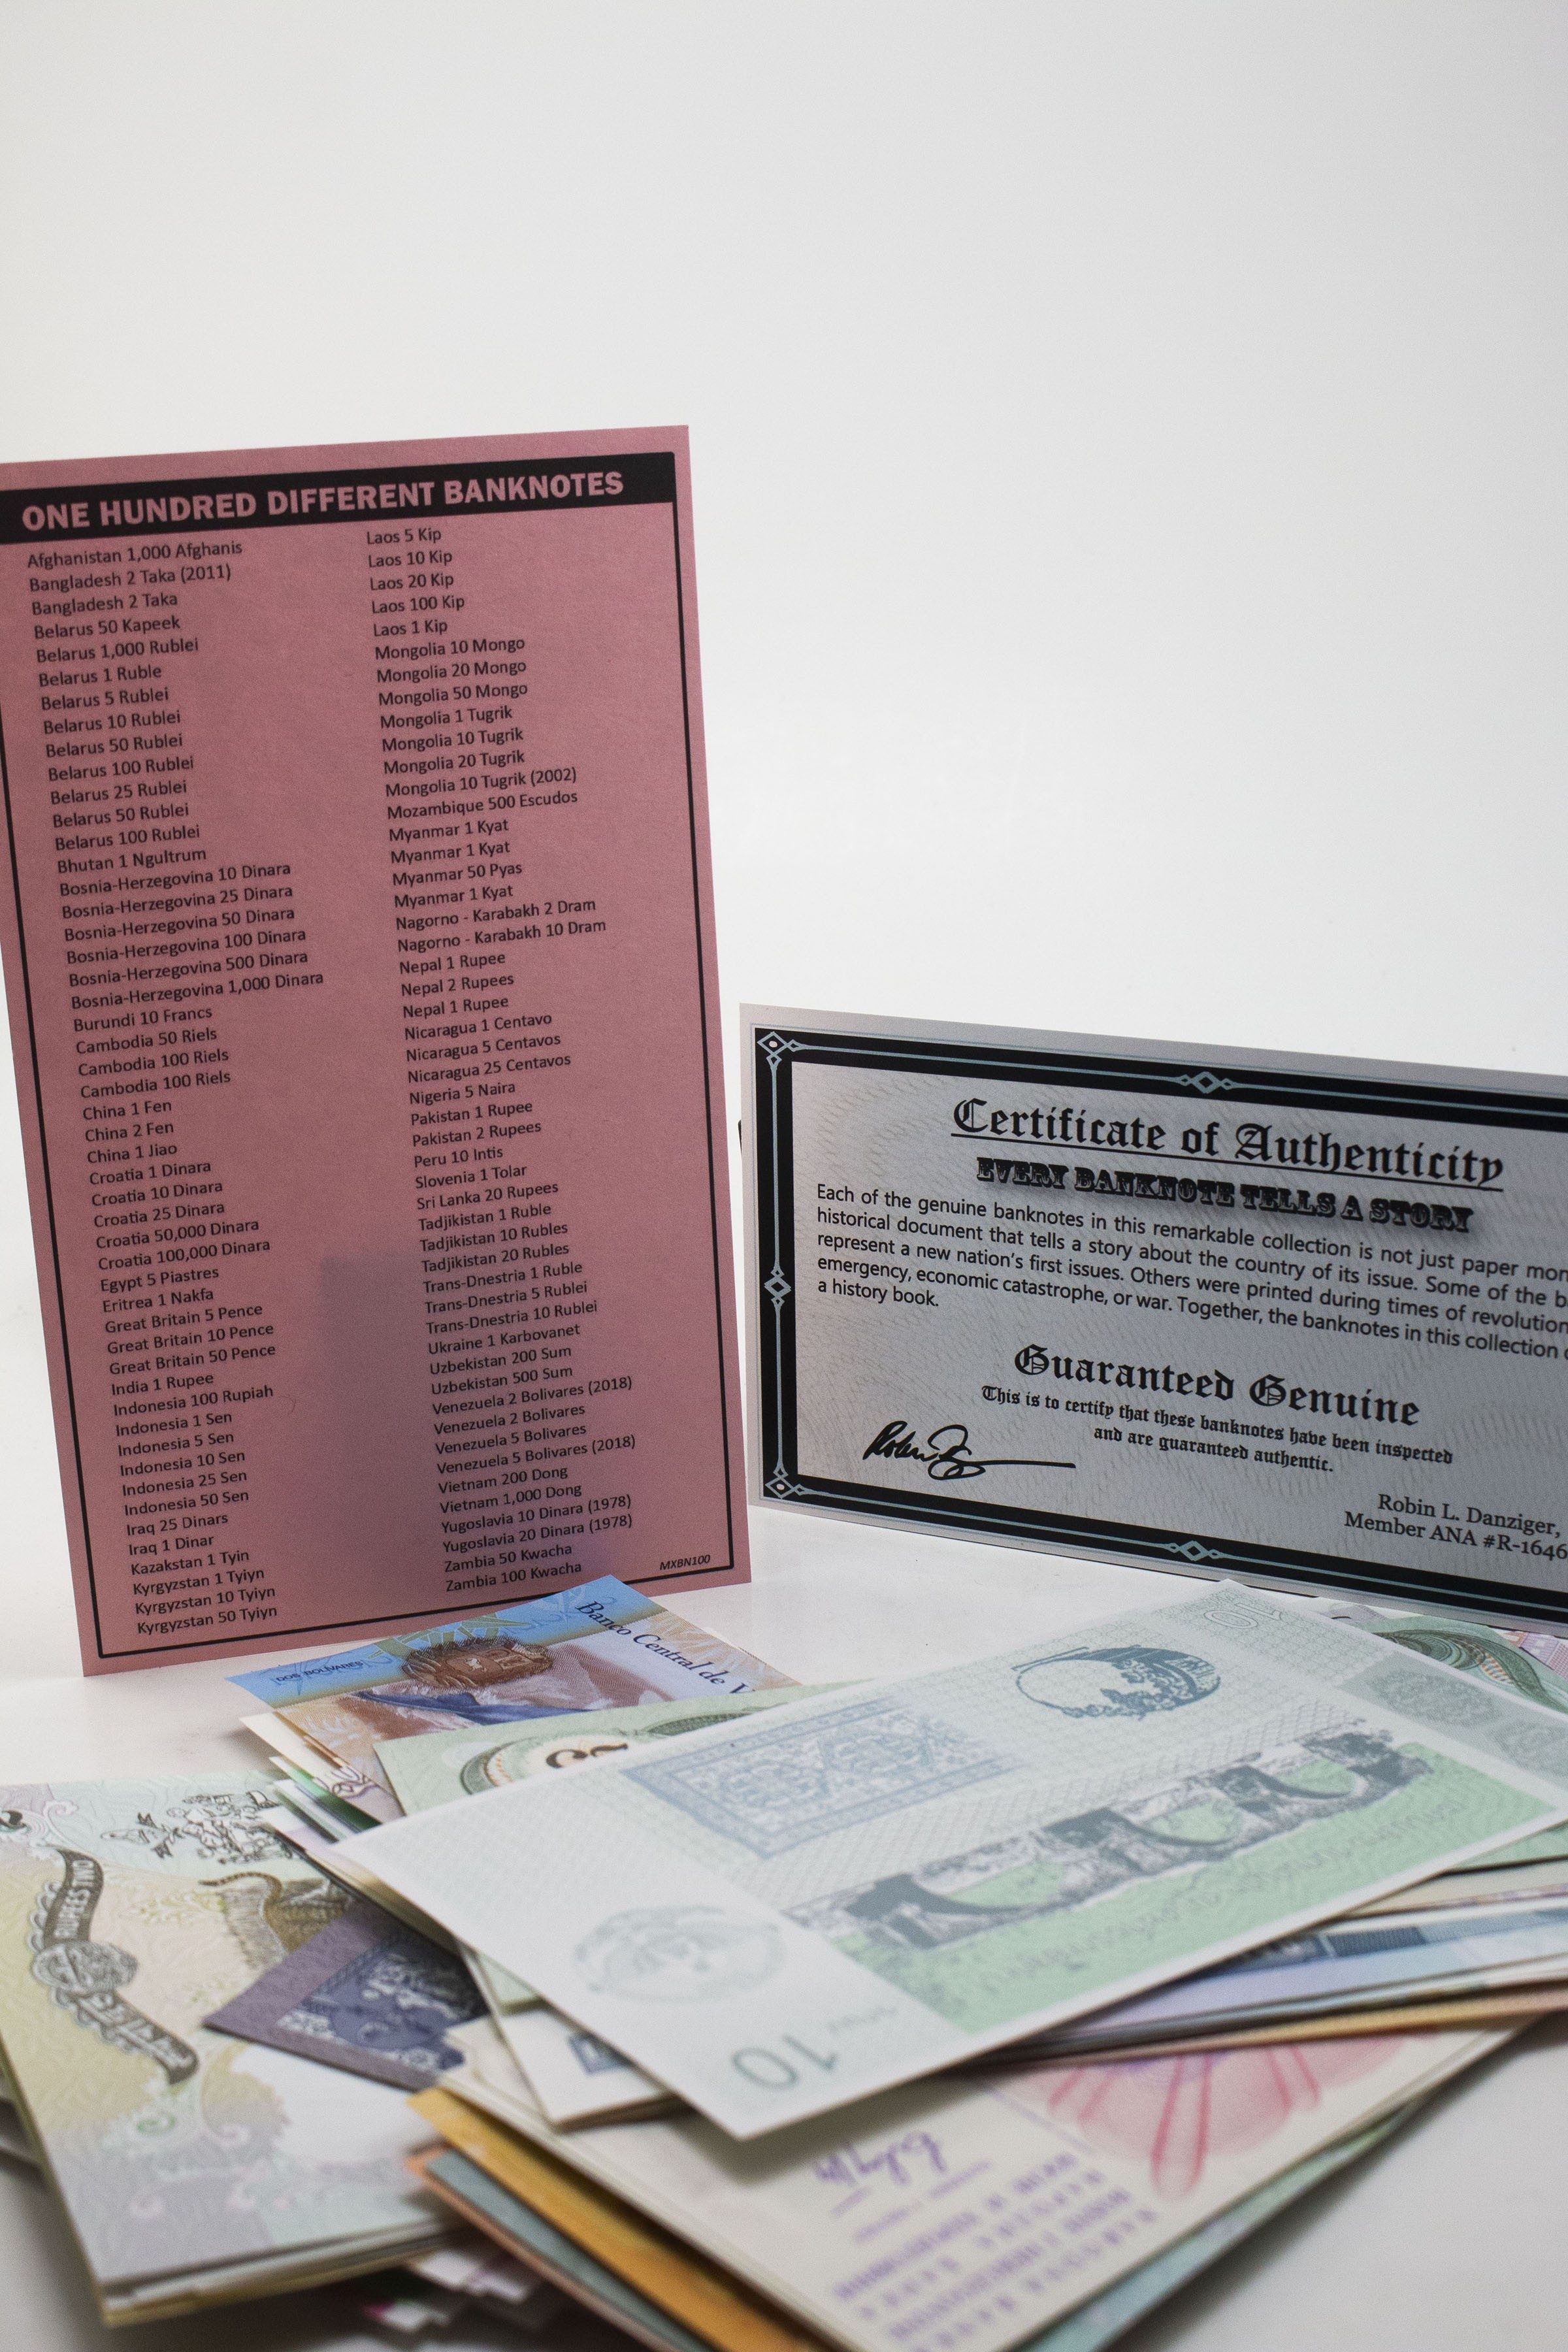 100 different banknotes